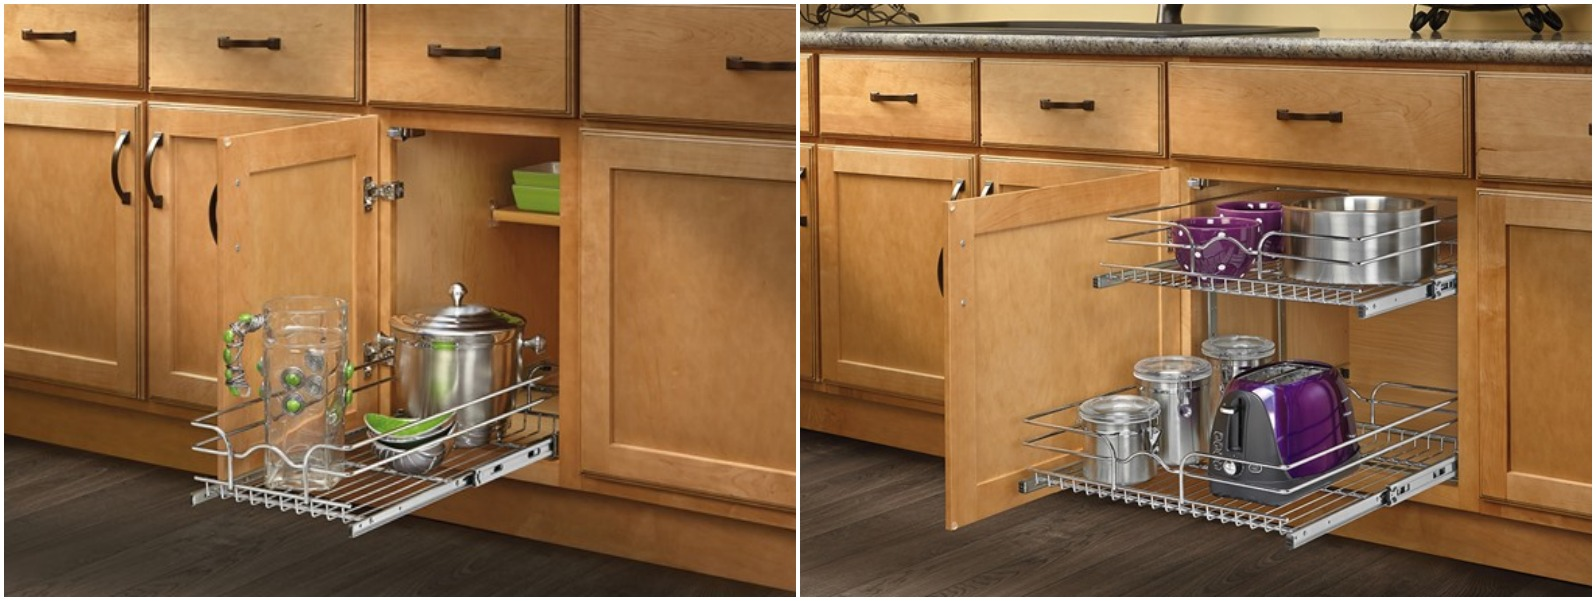 50% Off Rev-A-Shelf Kitchen Organization Products + Free ...